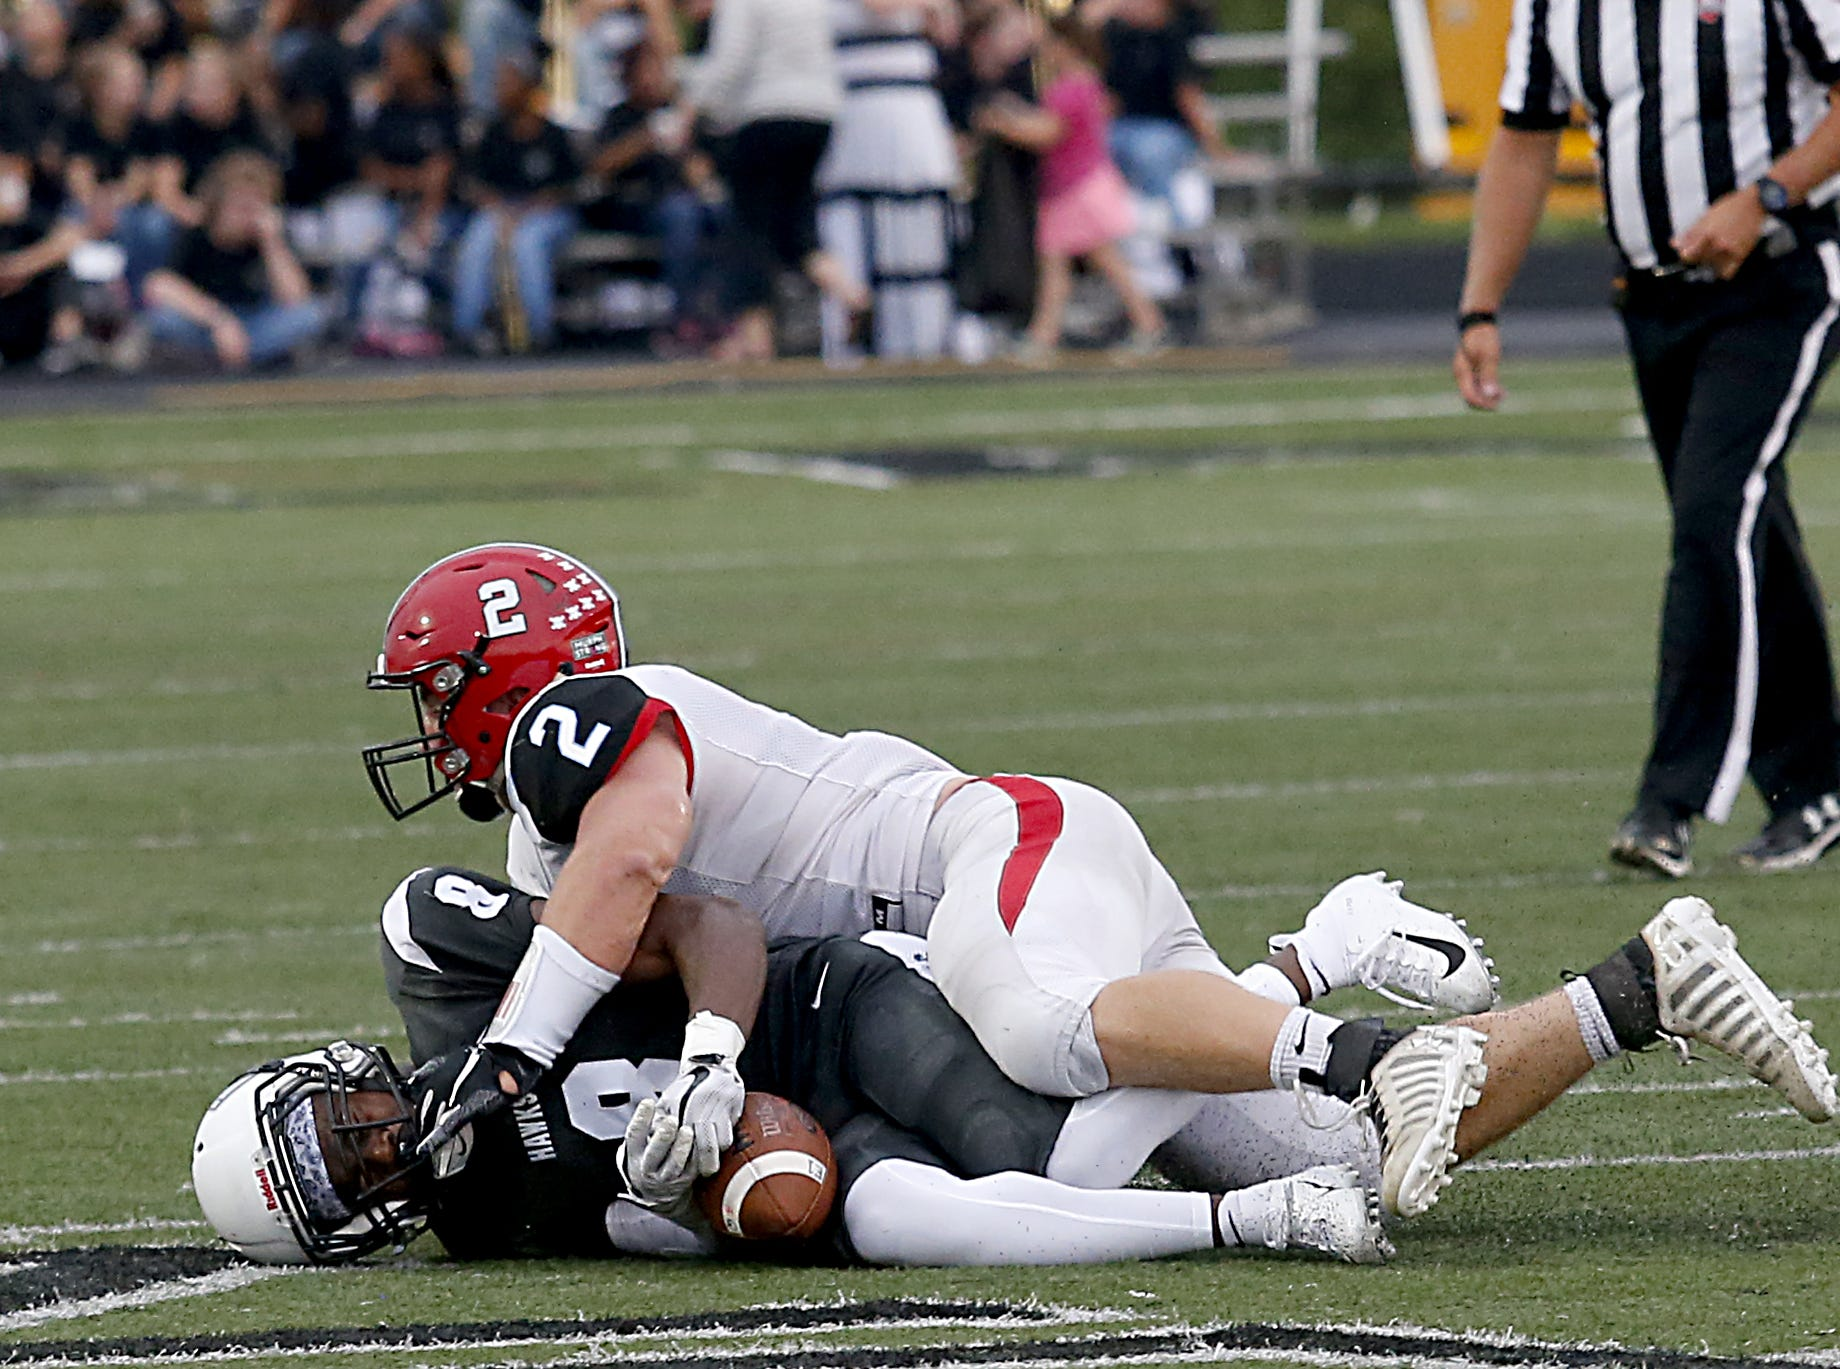 Lakota East running back Donnie Wilkinson is tackled by Kings linebacker Jake Stylski during their Skyline Chili Crosstown Showdown game at Lakota East Friday, August 31, 2018.